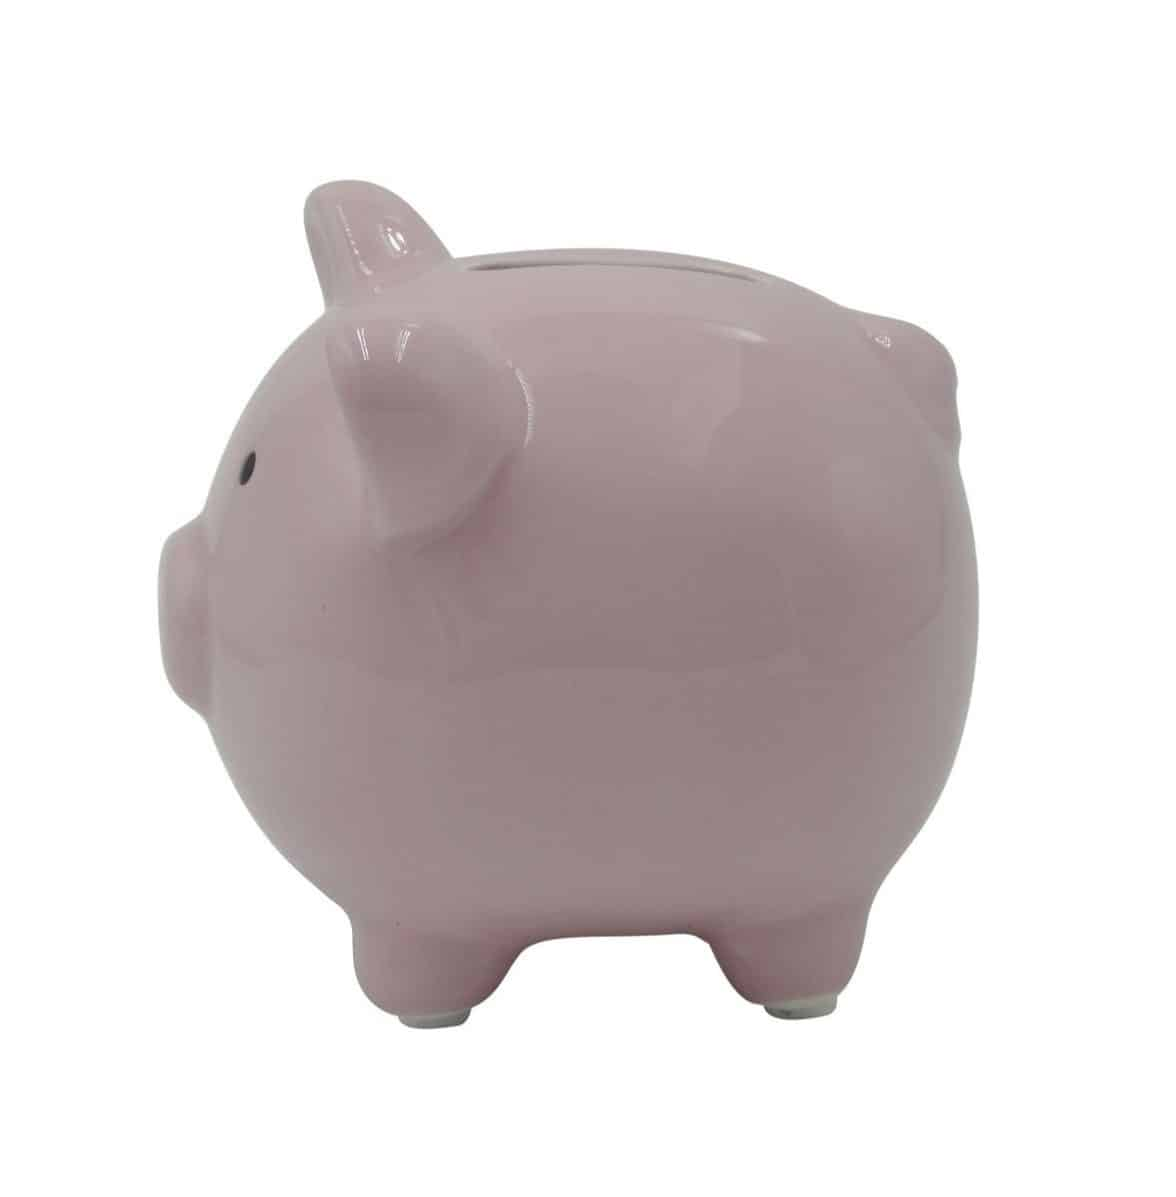 Money Bank For Kids Small Cute Ceramic Piggy Coin Bank For Kids Pink The